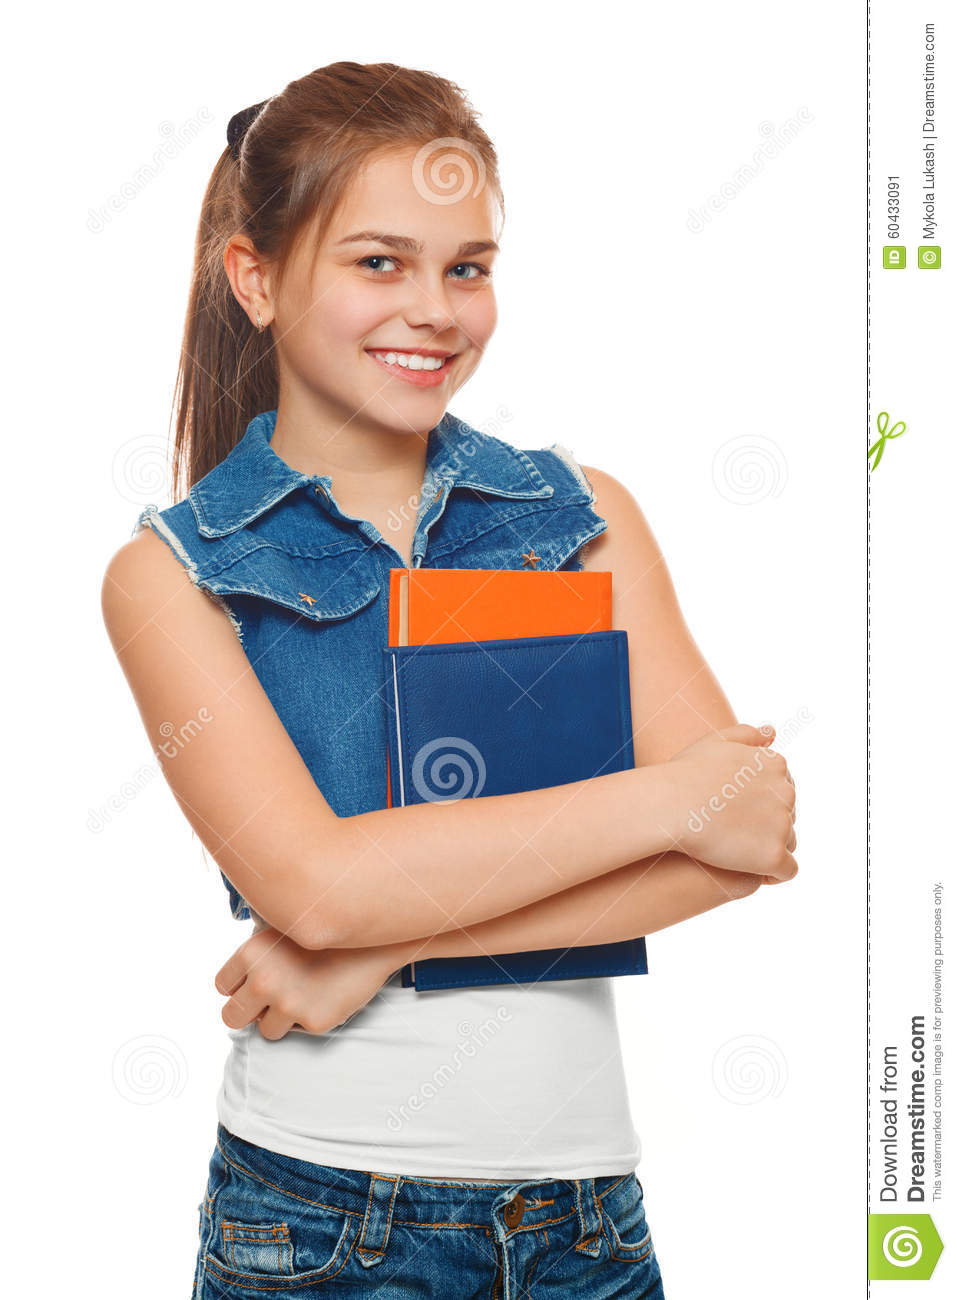 Stylish Young Girl In A Jeans Vest And Denim Shorts With Books In Hands. Schoolgirl With ...